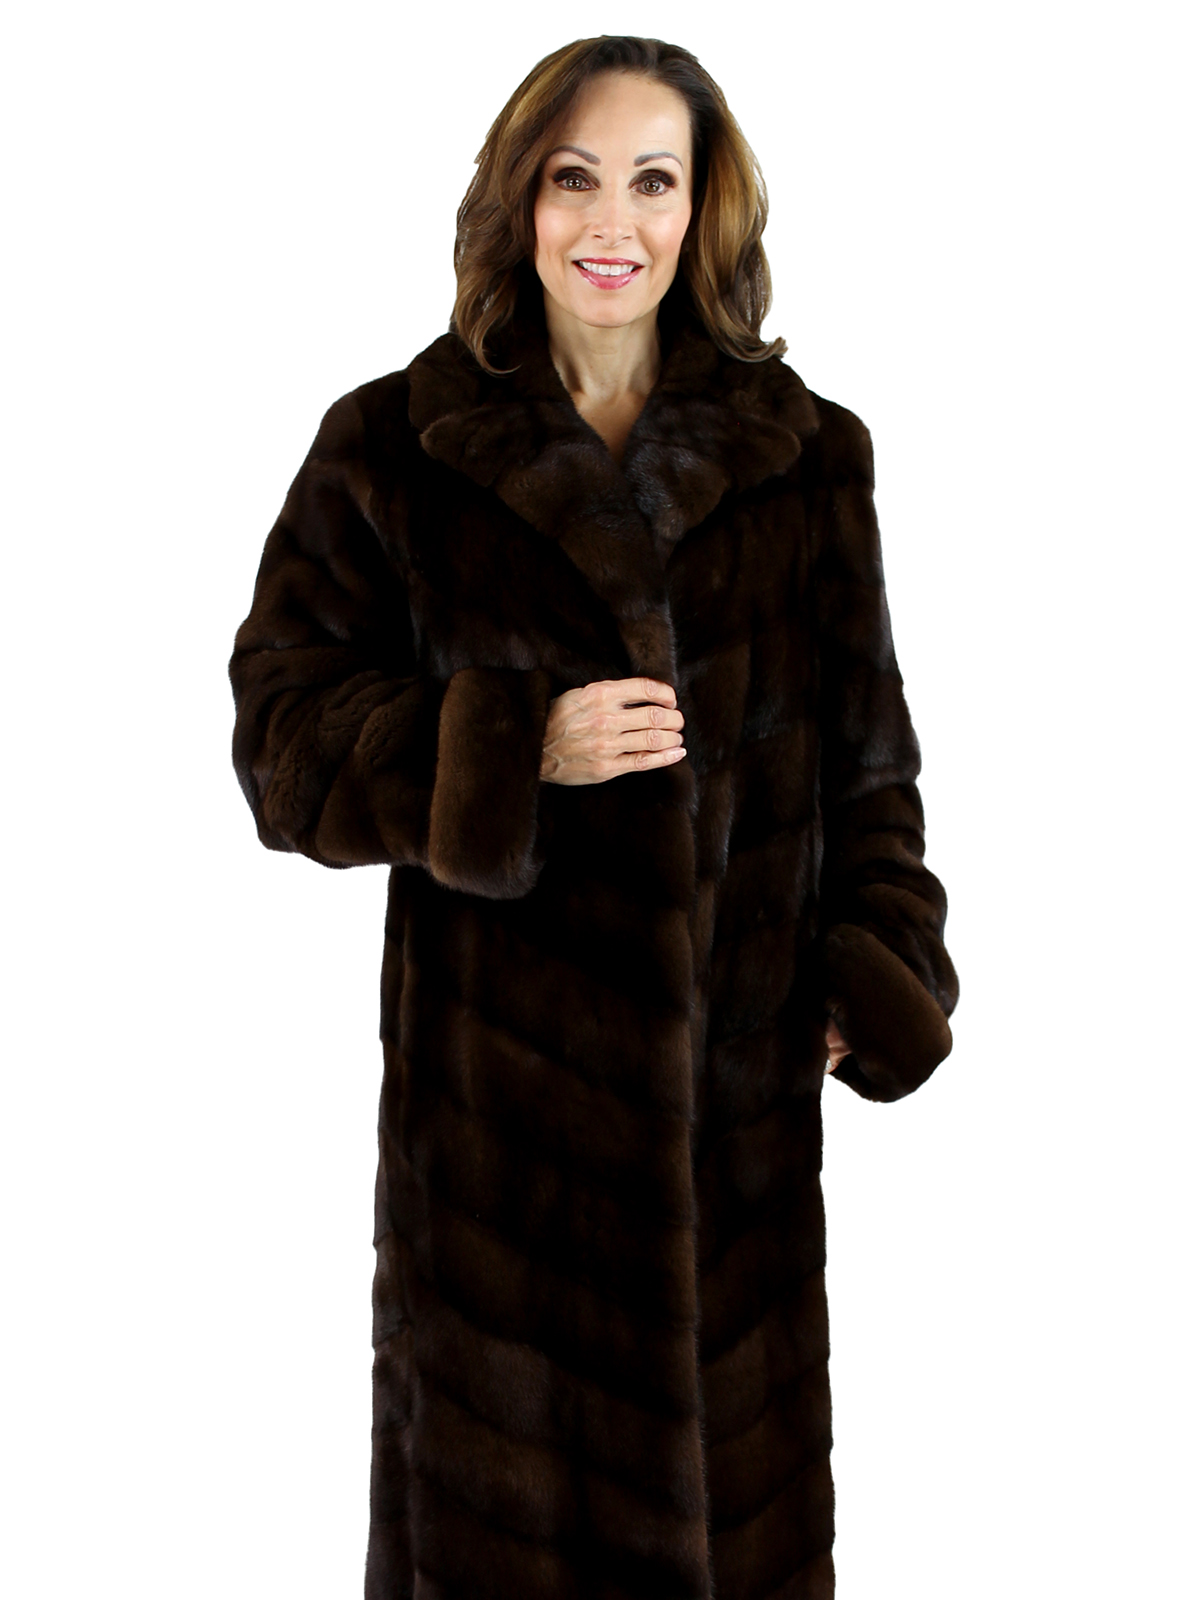 Saks Fifth Avenue Woman's Mahogany Female Mink Directional Fur Coat